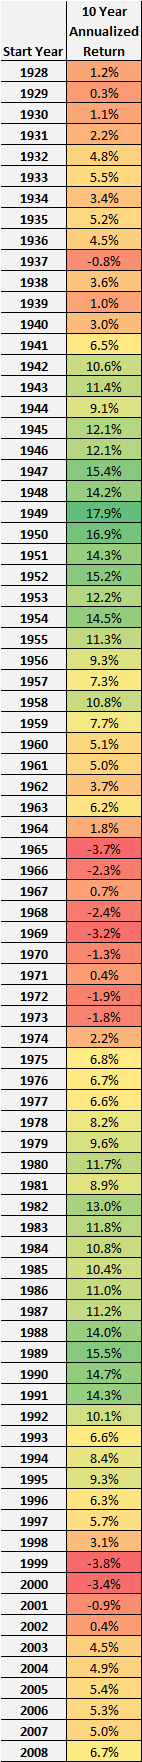 10-year returns for S&P 500